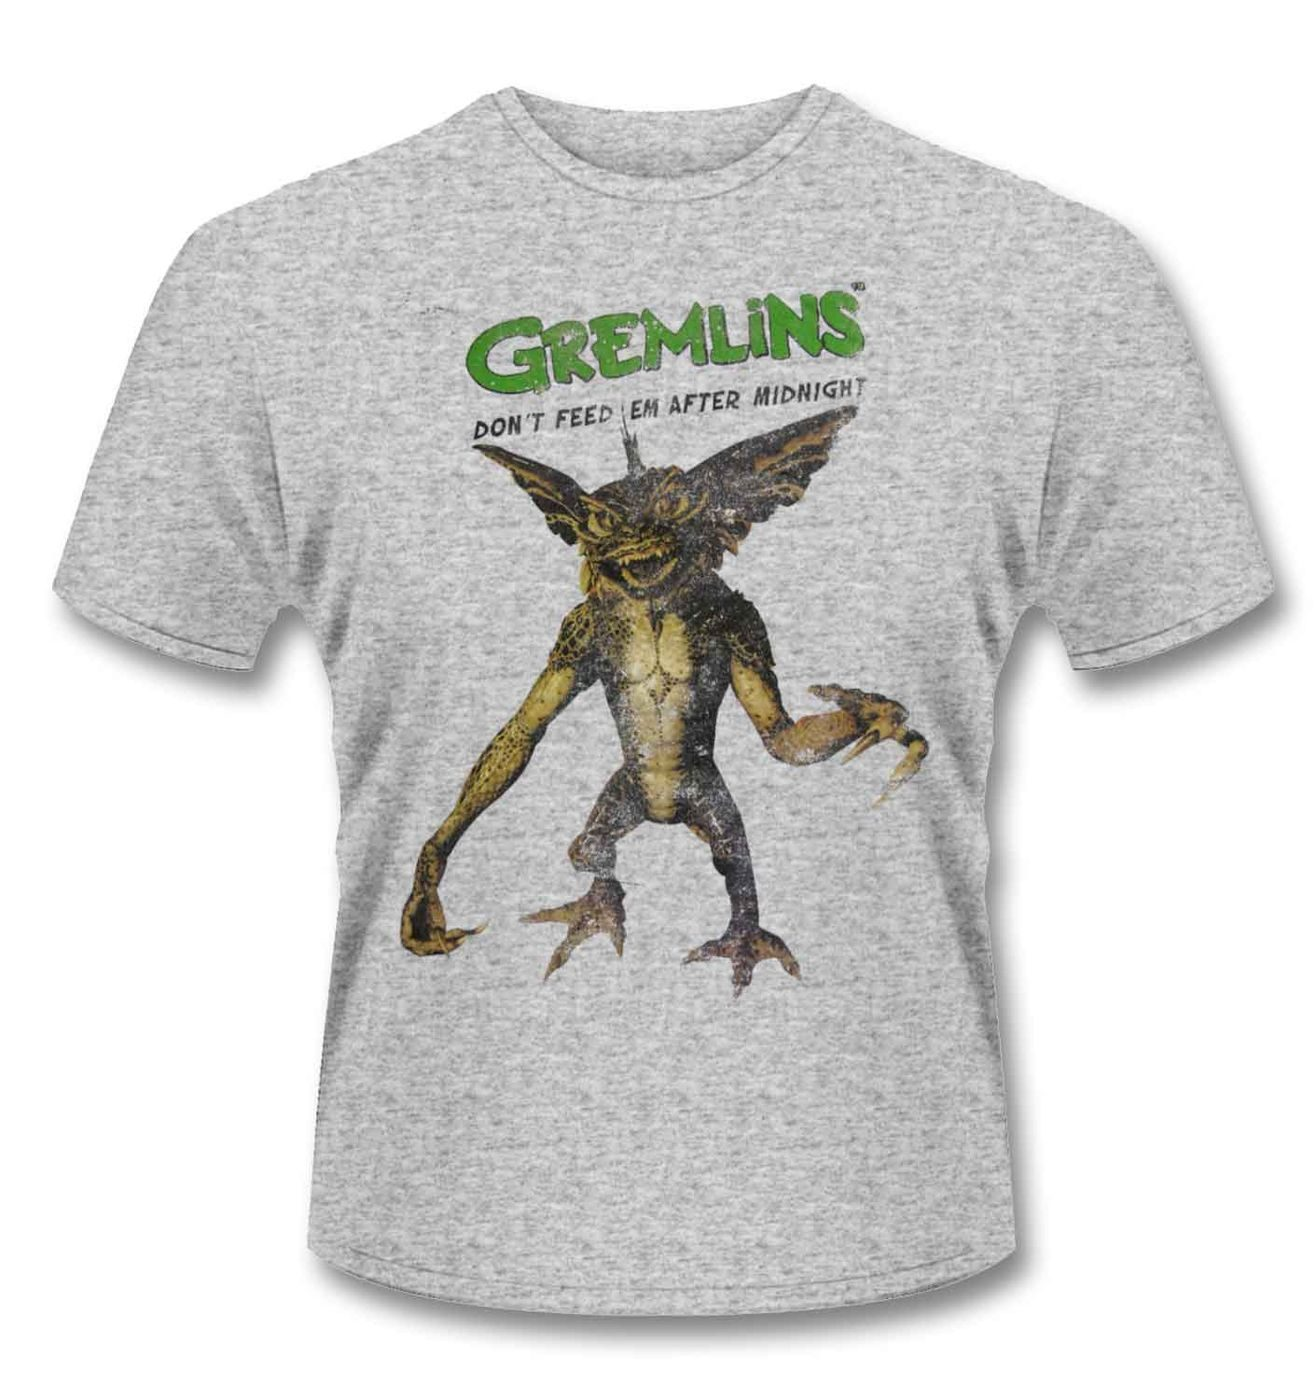 Official Gremlins t-shirt - Spike - Don't Feed 'Em After Midnight